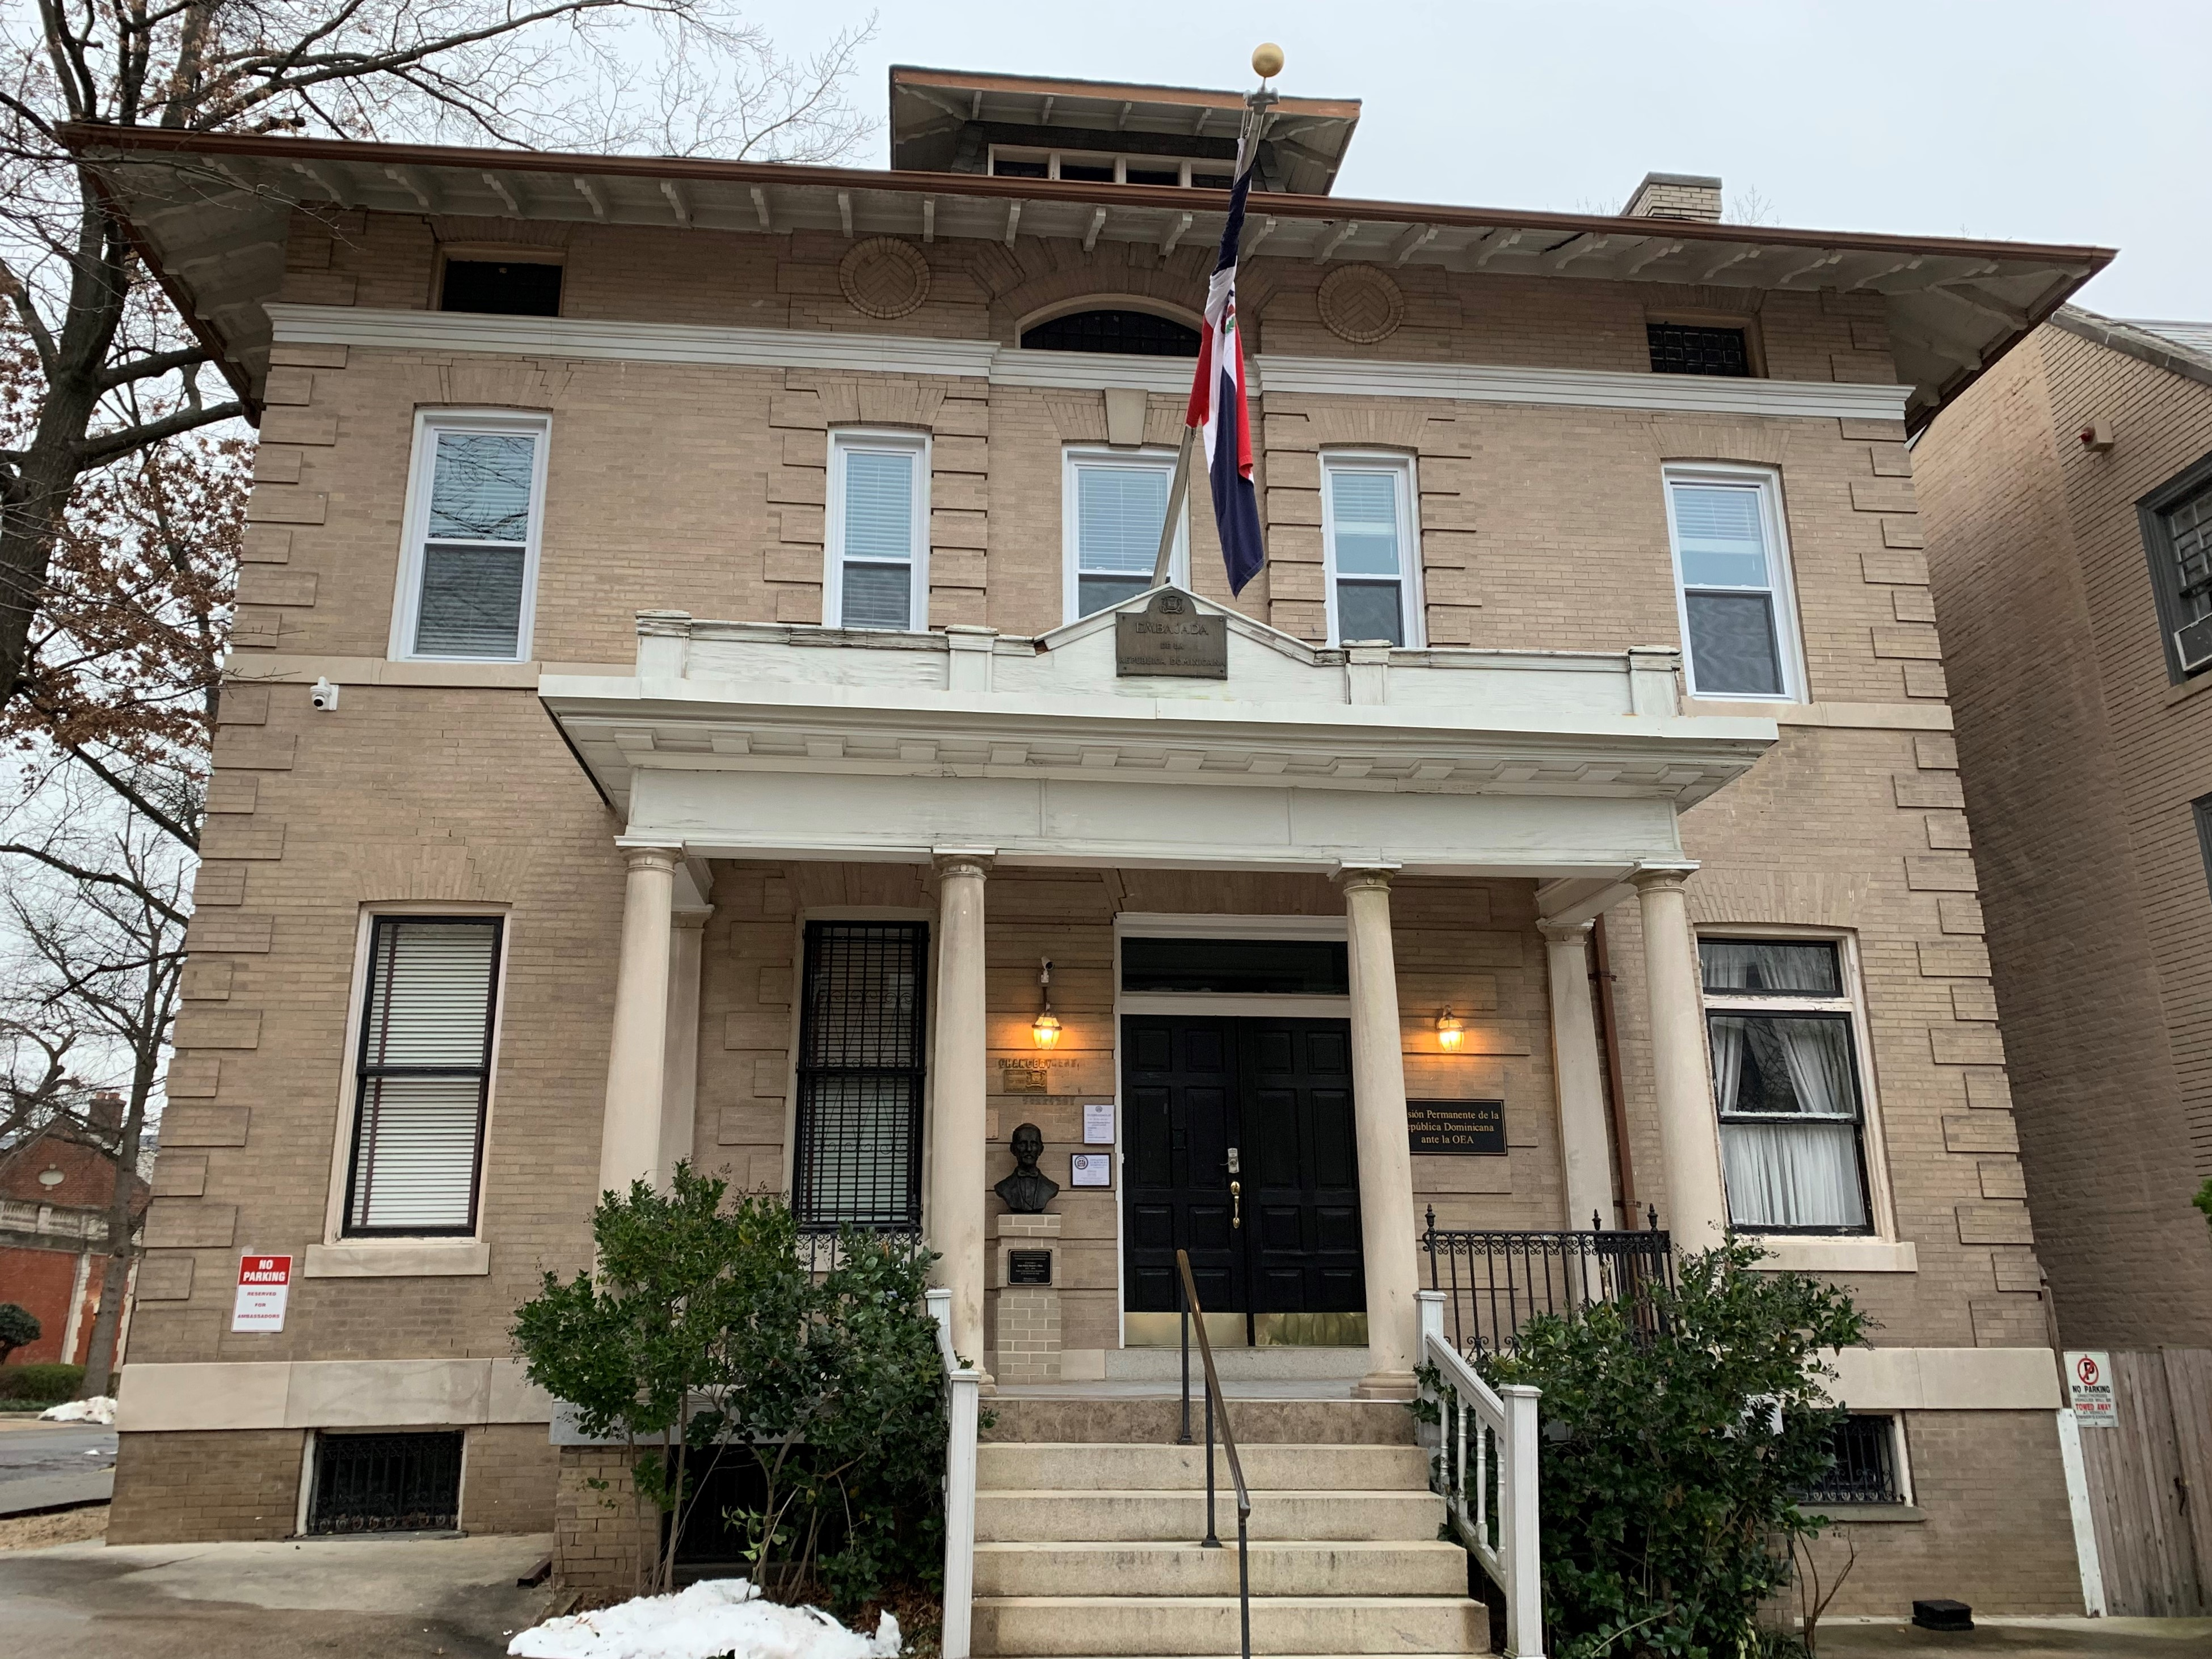 Real Estate and Homes For Sale Near the Embassy of Dominicana in Washington, DC. Artyom Shmatko Realtor